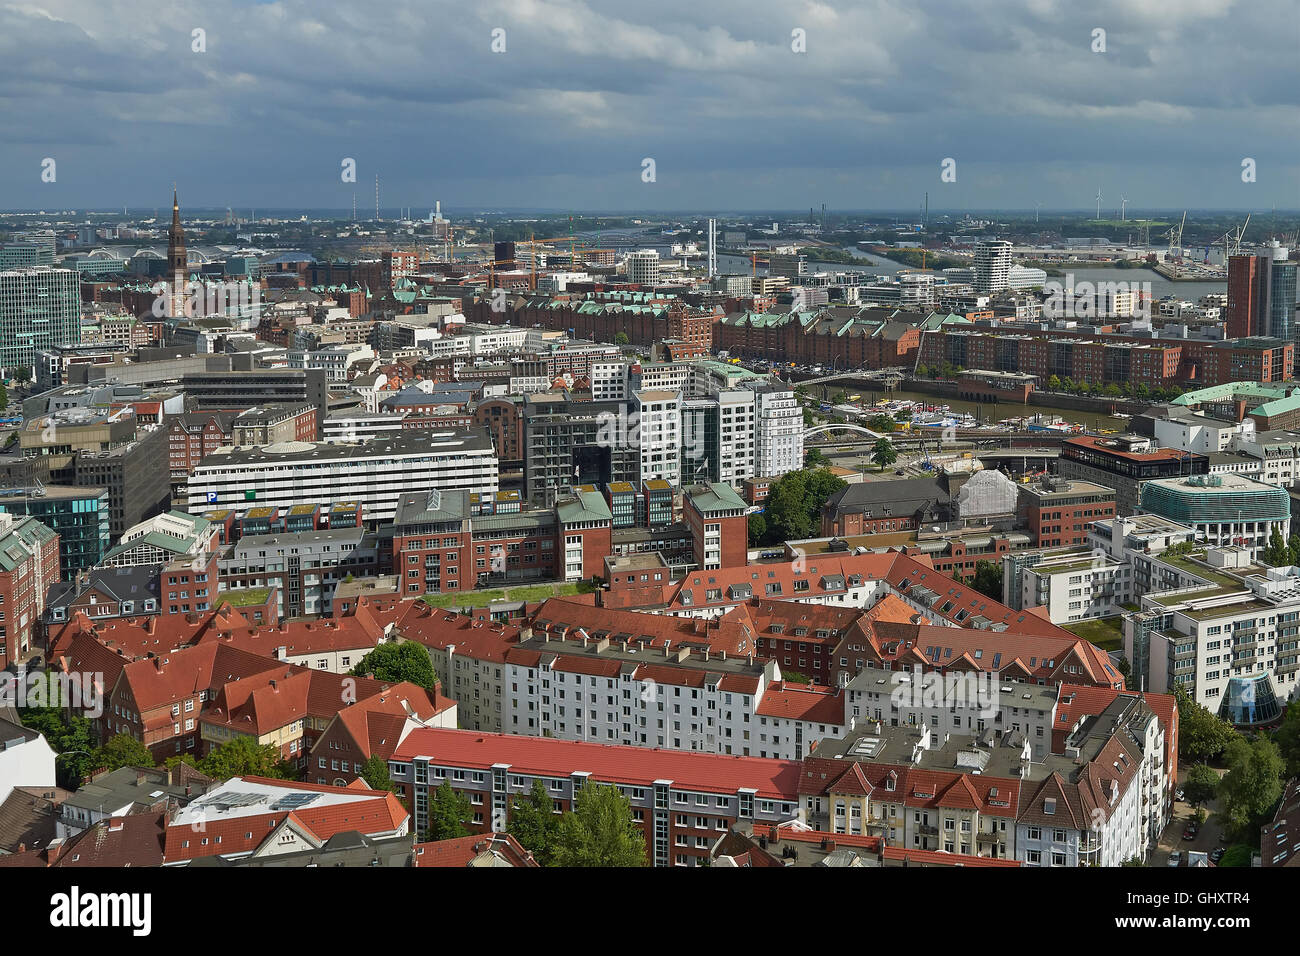 Aerial view of Hamburg city, Germany on a sunny day - Stock Image